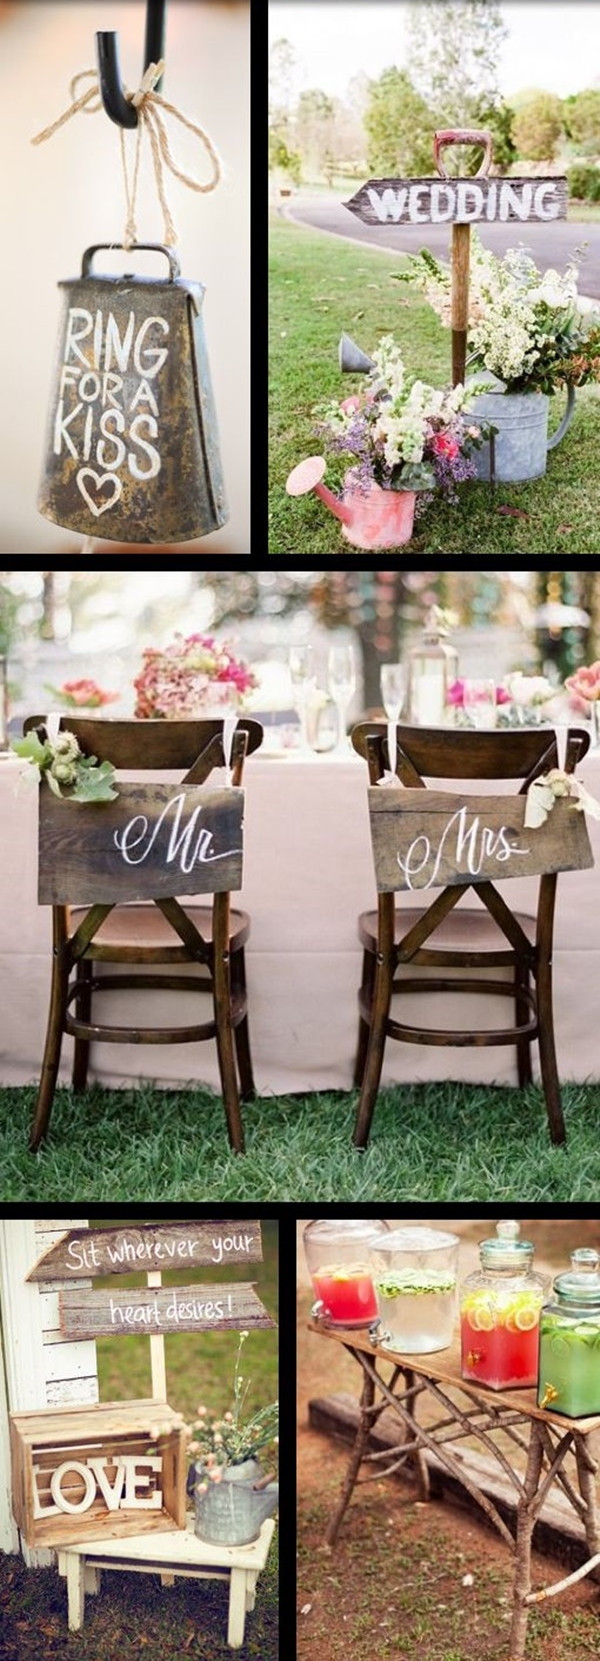 DIY Wedding Decorations On A Budget  30 DIY Weddings Ideas A Bud To Make It Unfor table